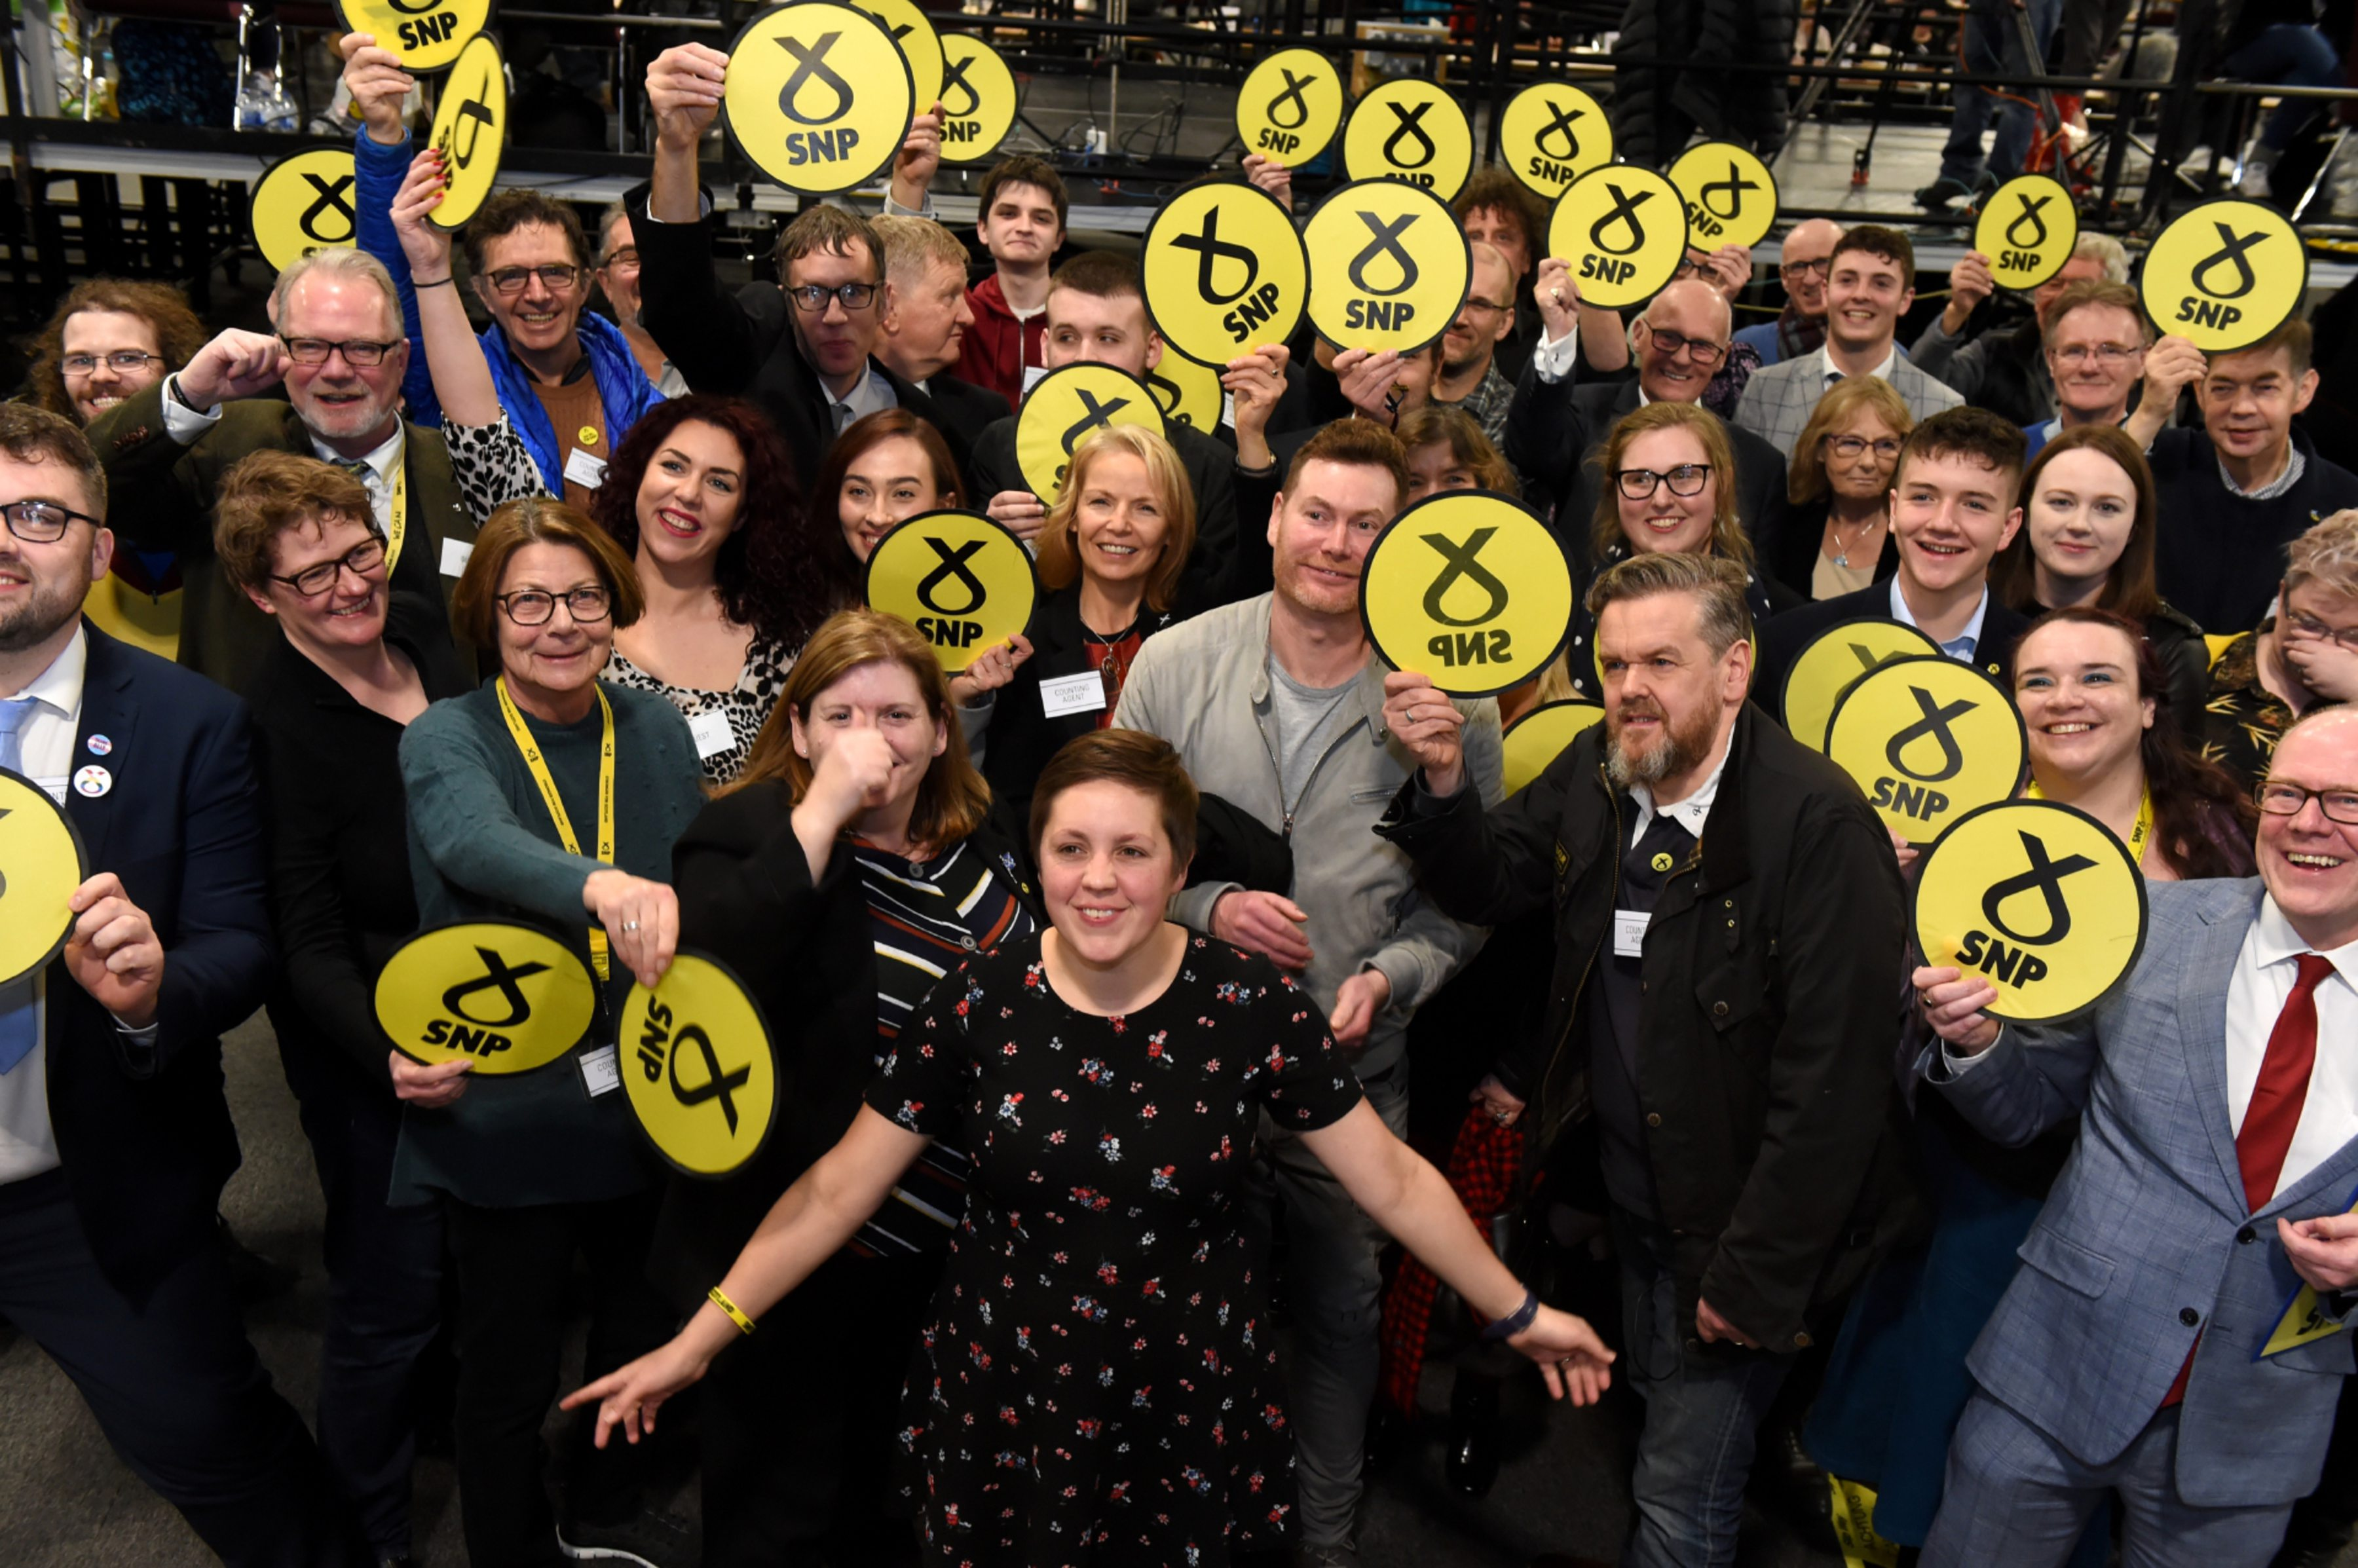 Kirsty Blackman, Scottish National Party  Picture by KENNY ELRICK